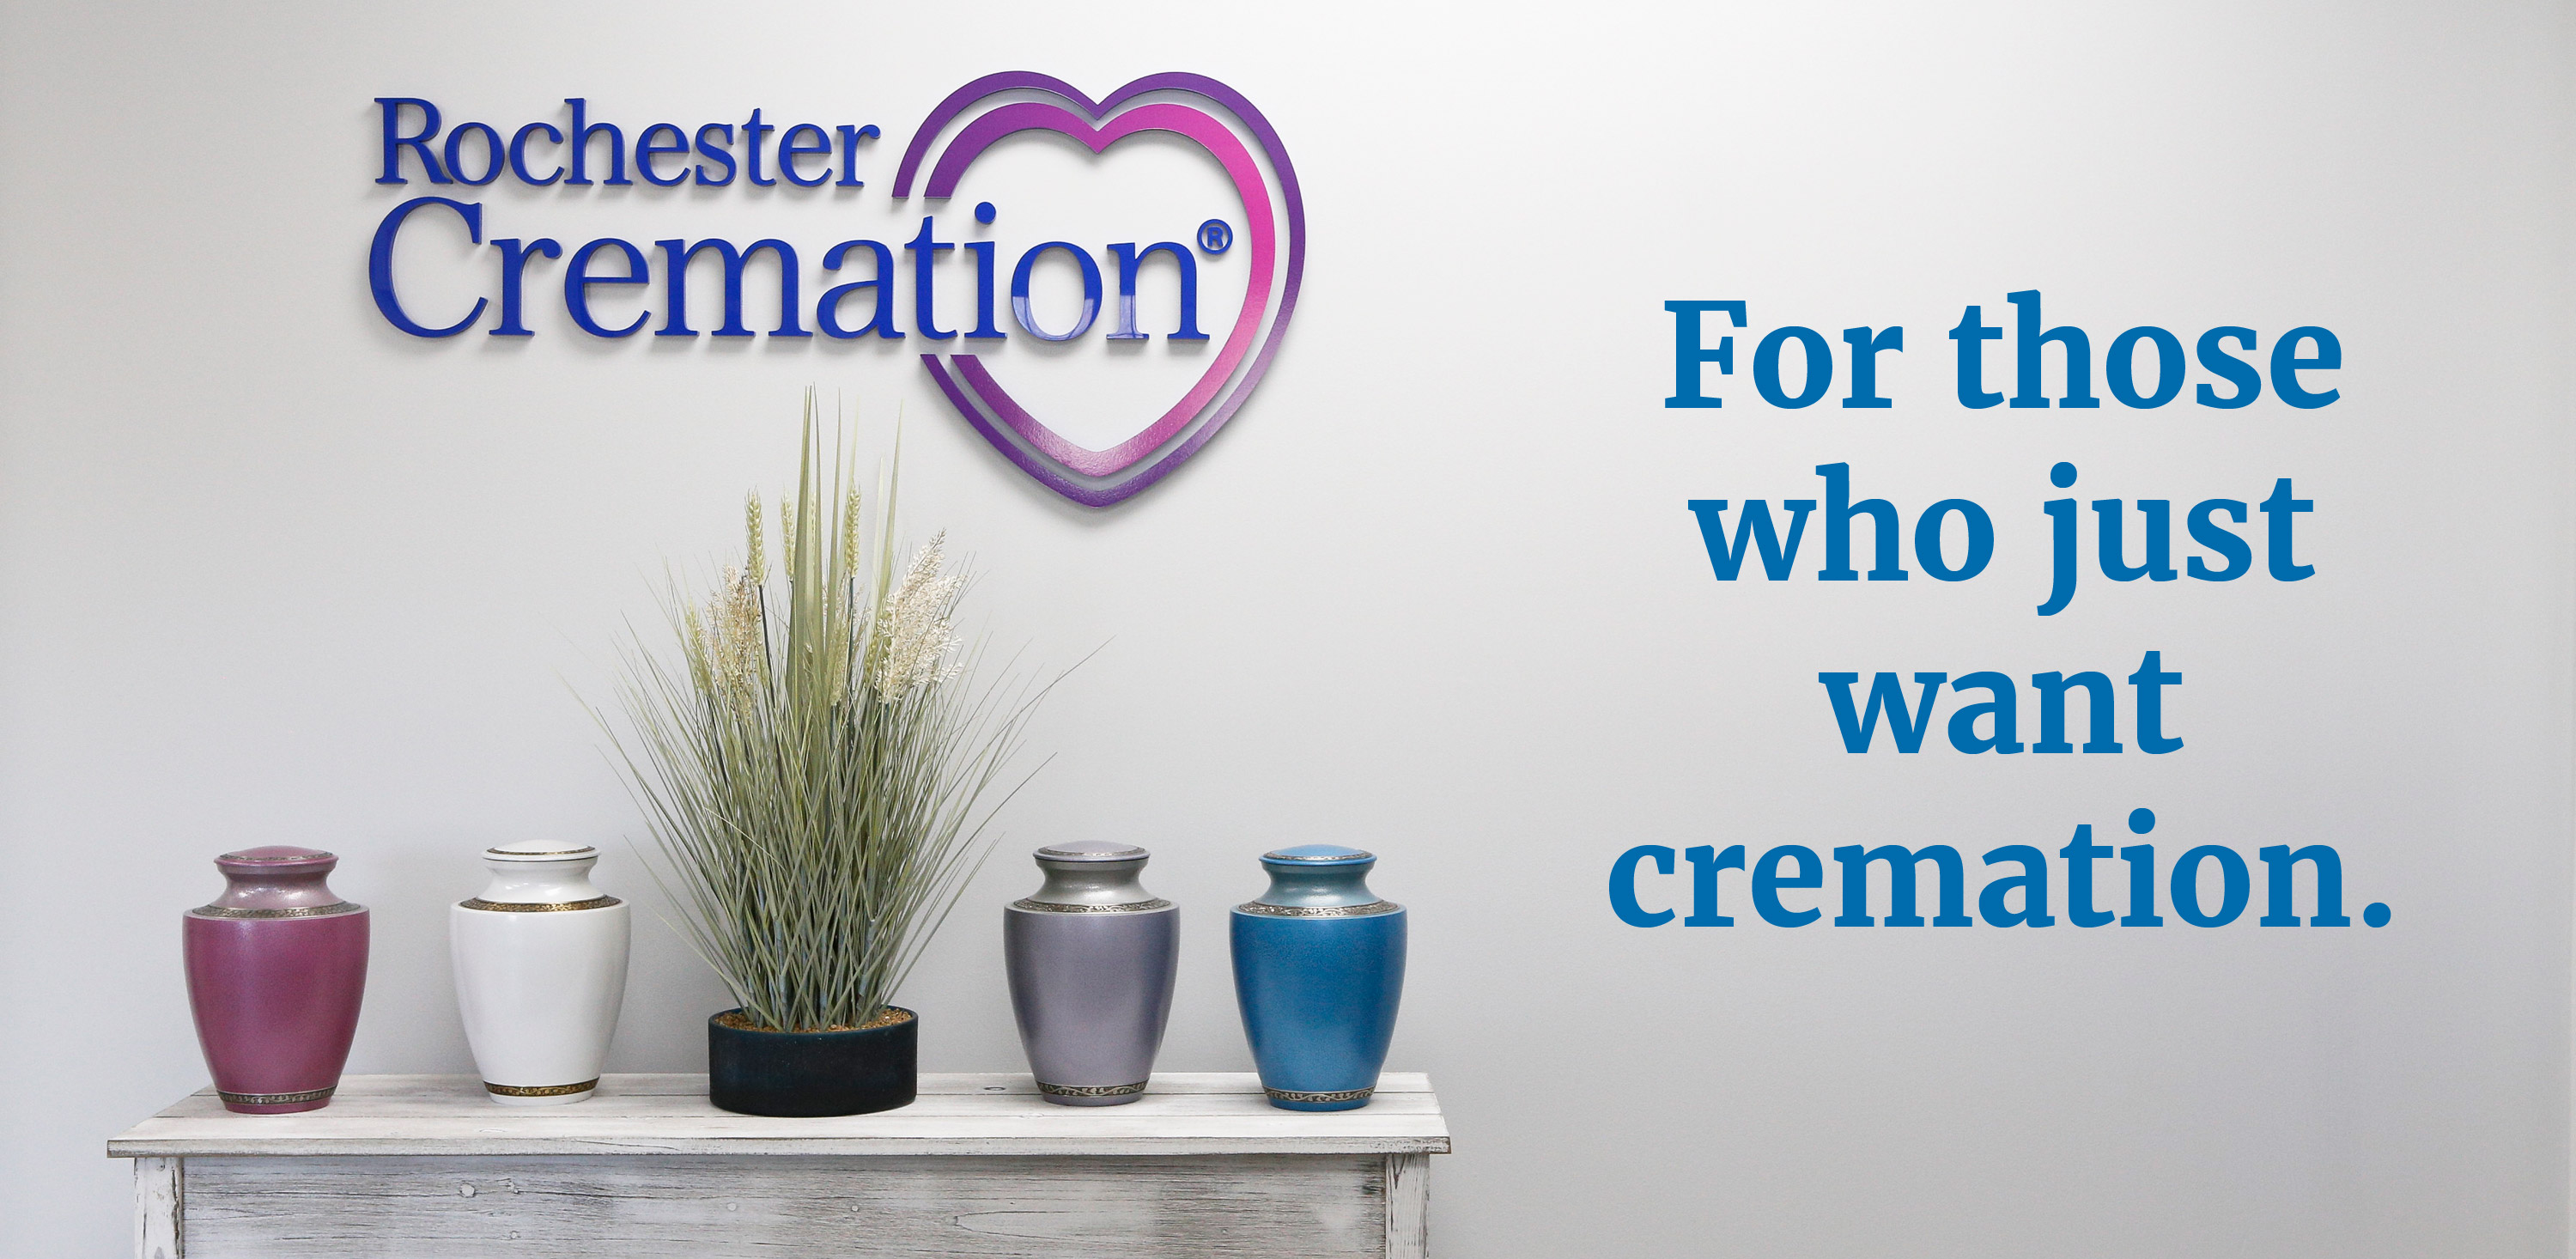 For those who just want cremation.